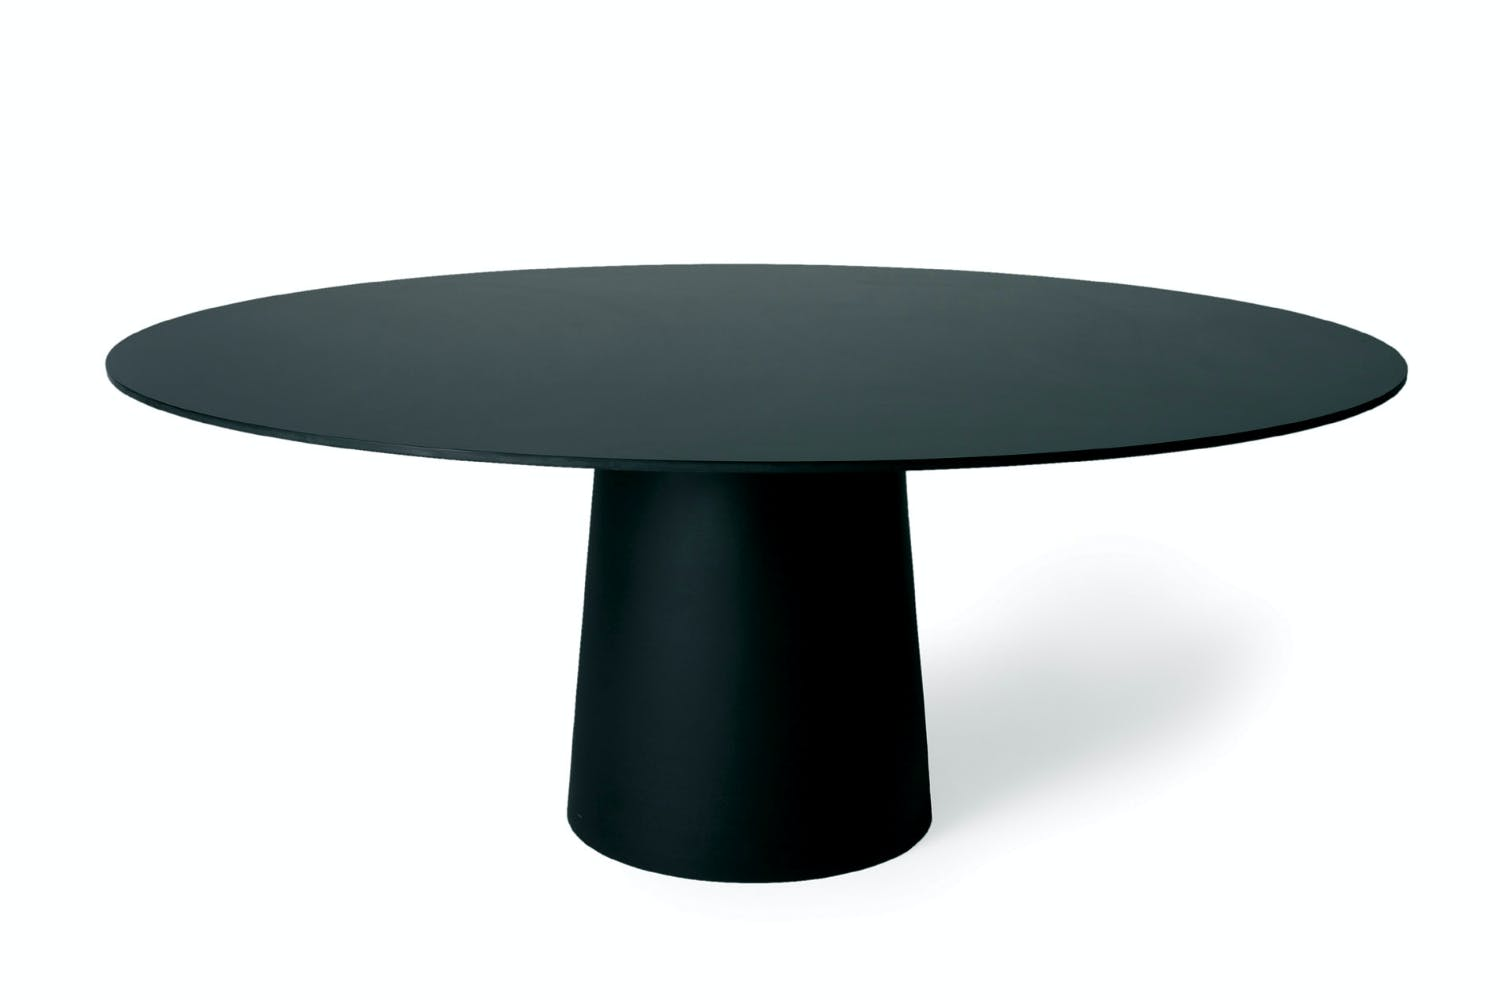 Container table hpl round 160cm by marcel wanders for for Round dining tables melbourne